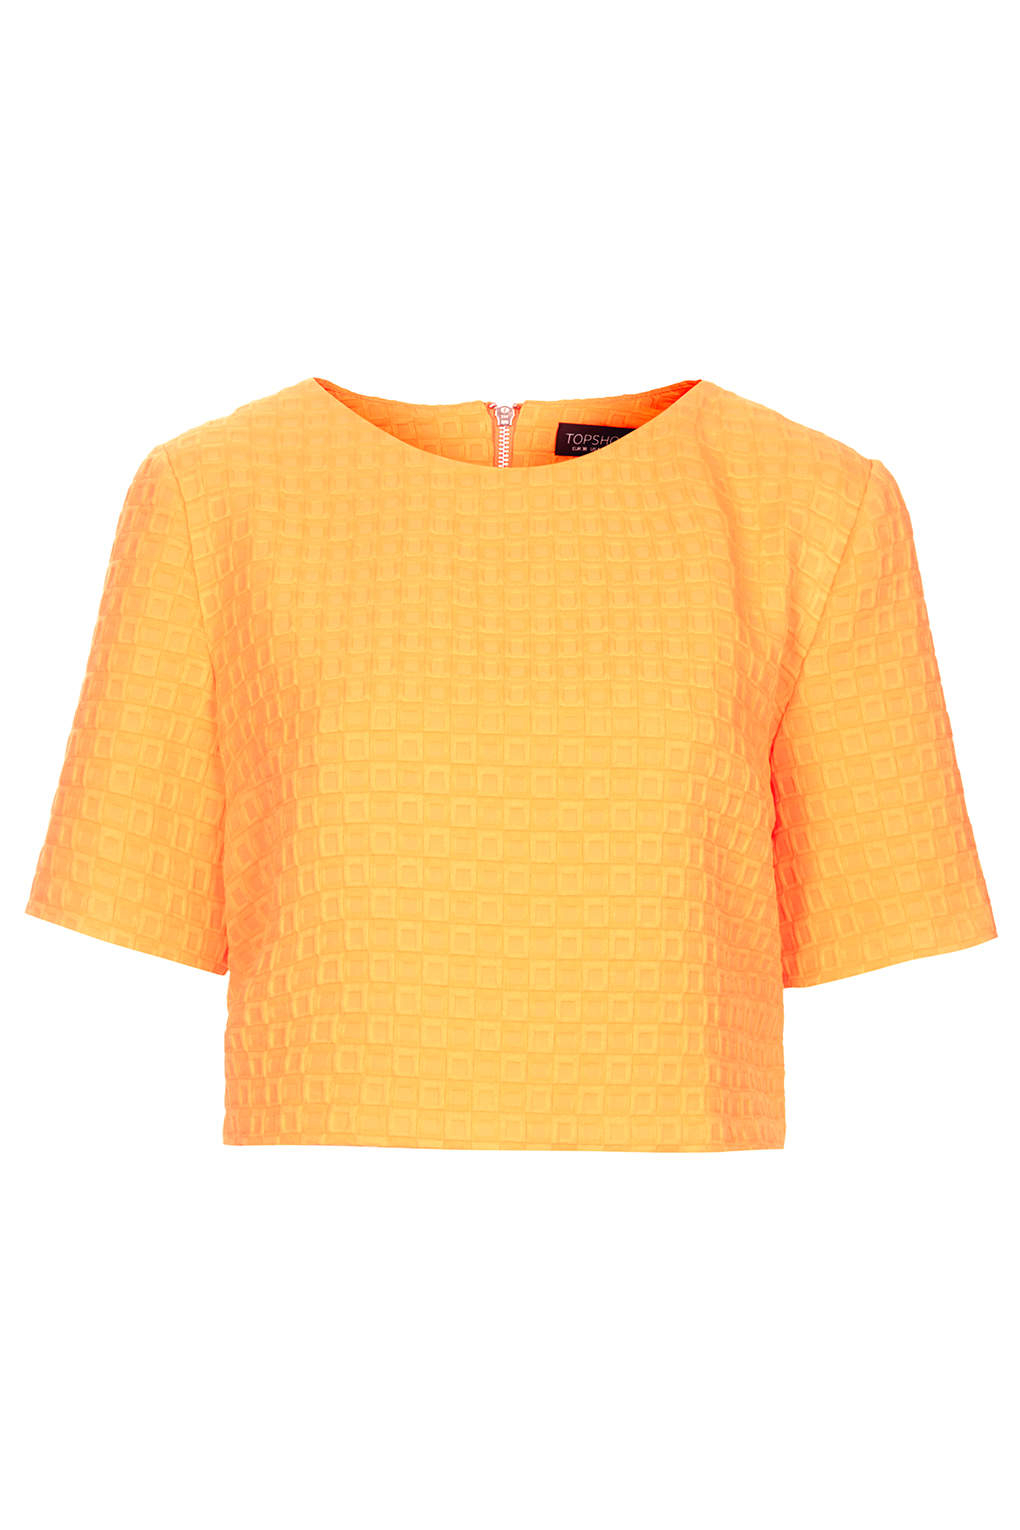 topshop texture crop tee in orange lyst. Black Bedroom Furniture Sets. Home Design Ideas